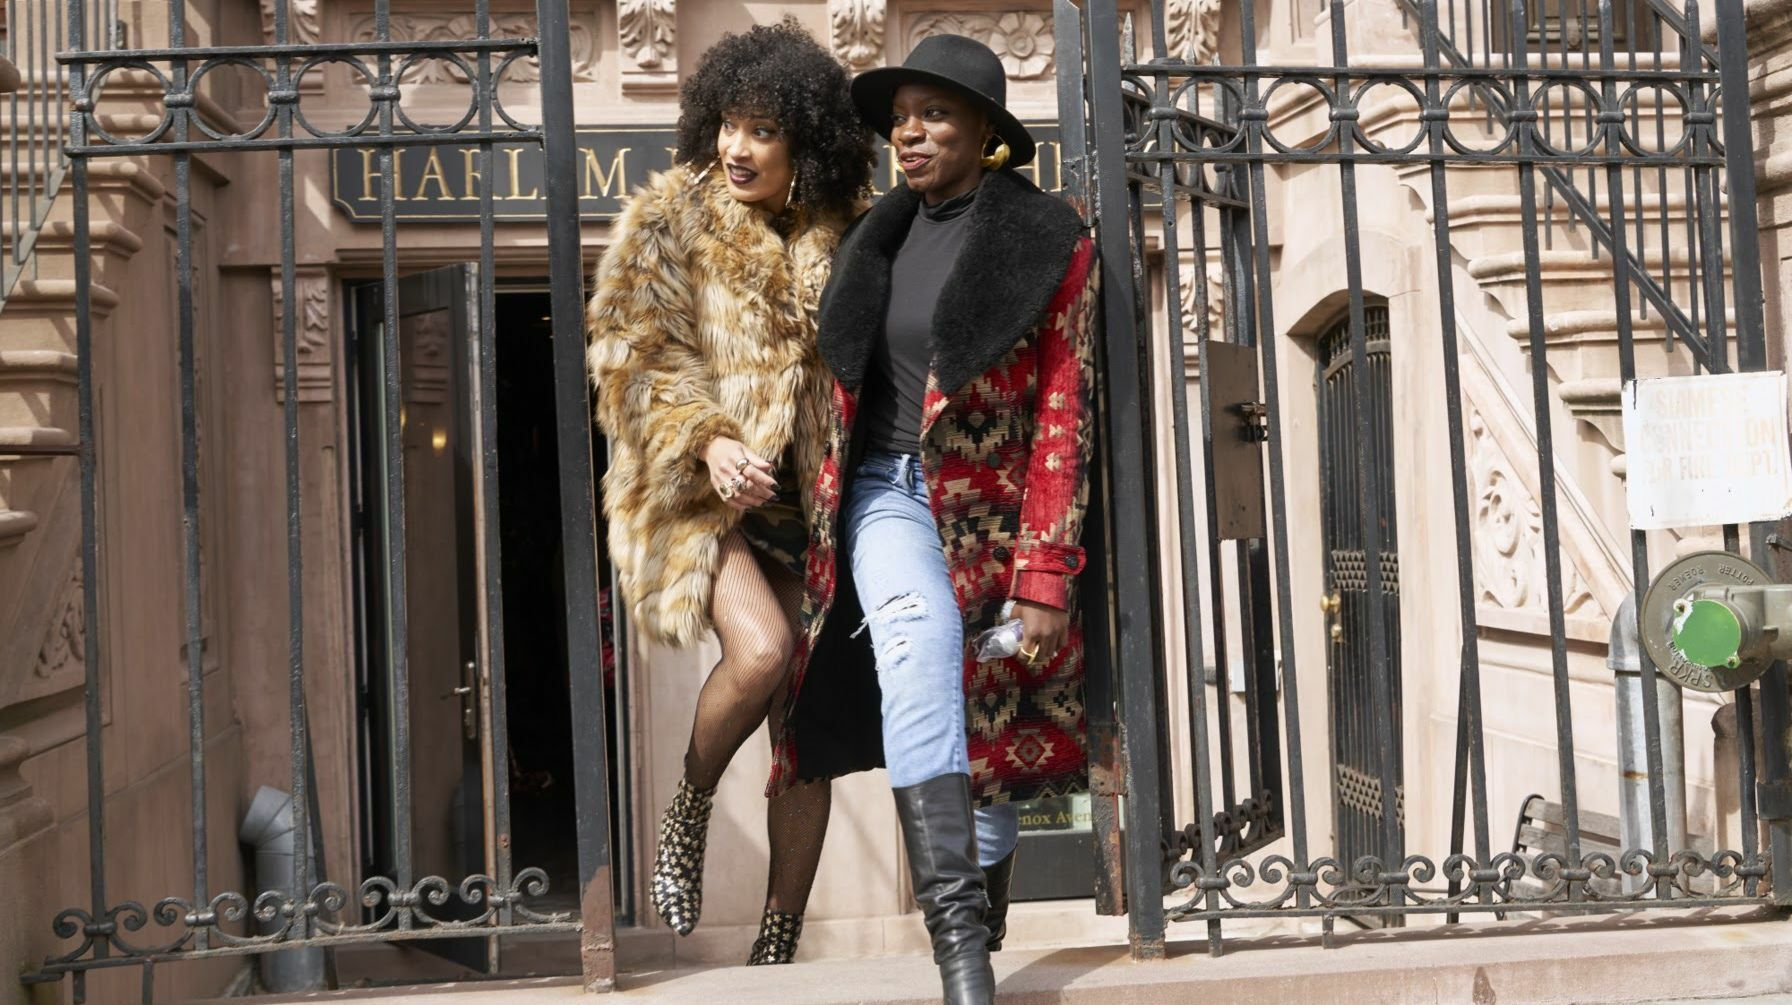 Sidewalk Safaris: Harlem's Black Fashion Tour